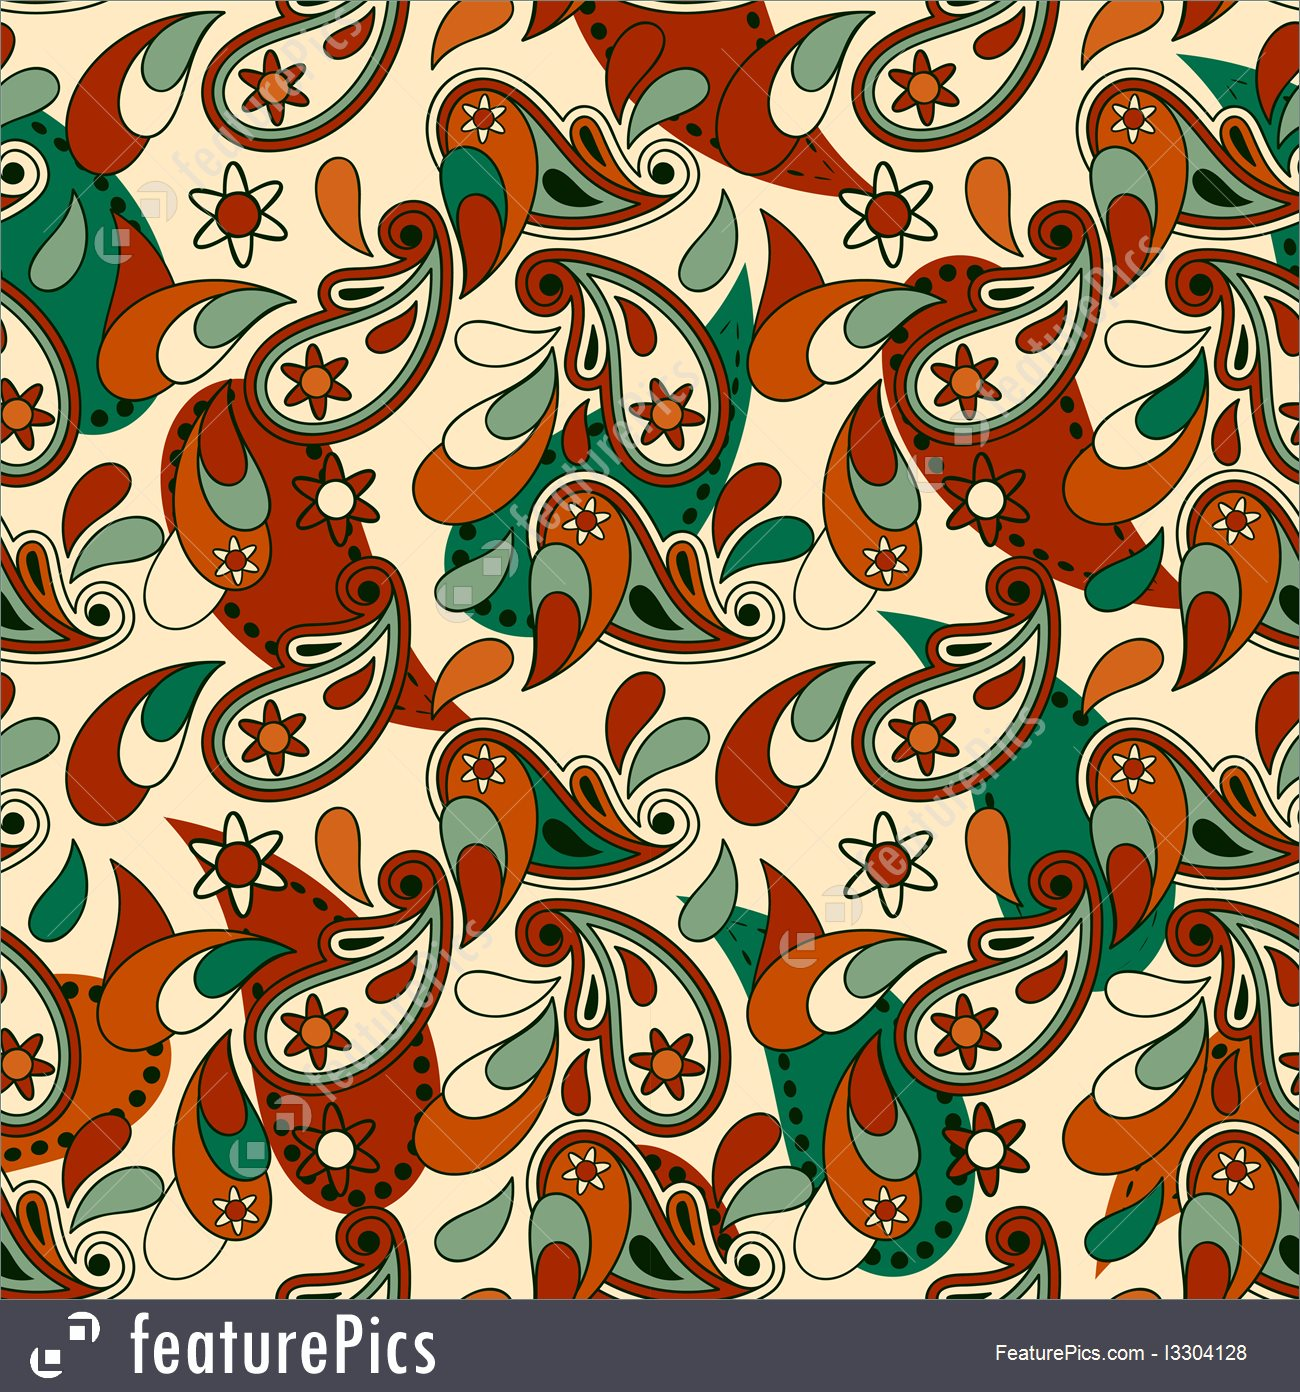 Paisley Pattern Vector at GetDrawings com | Free for